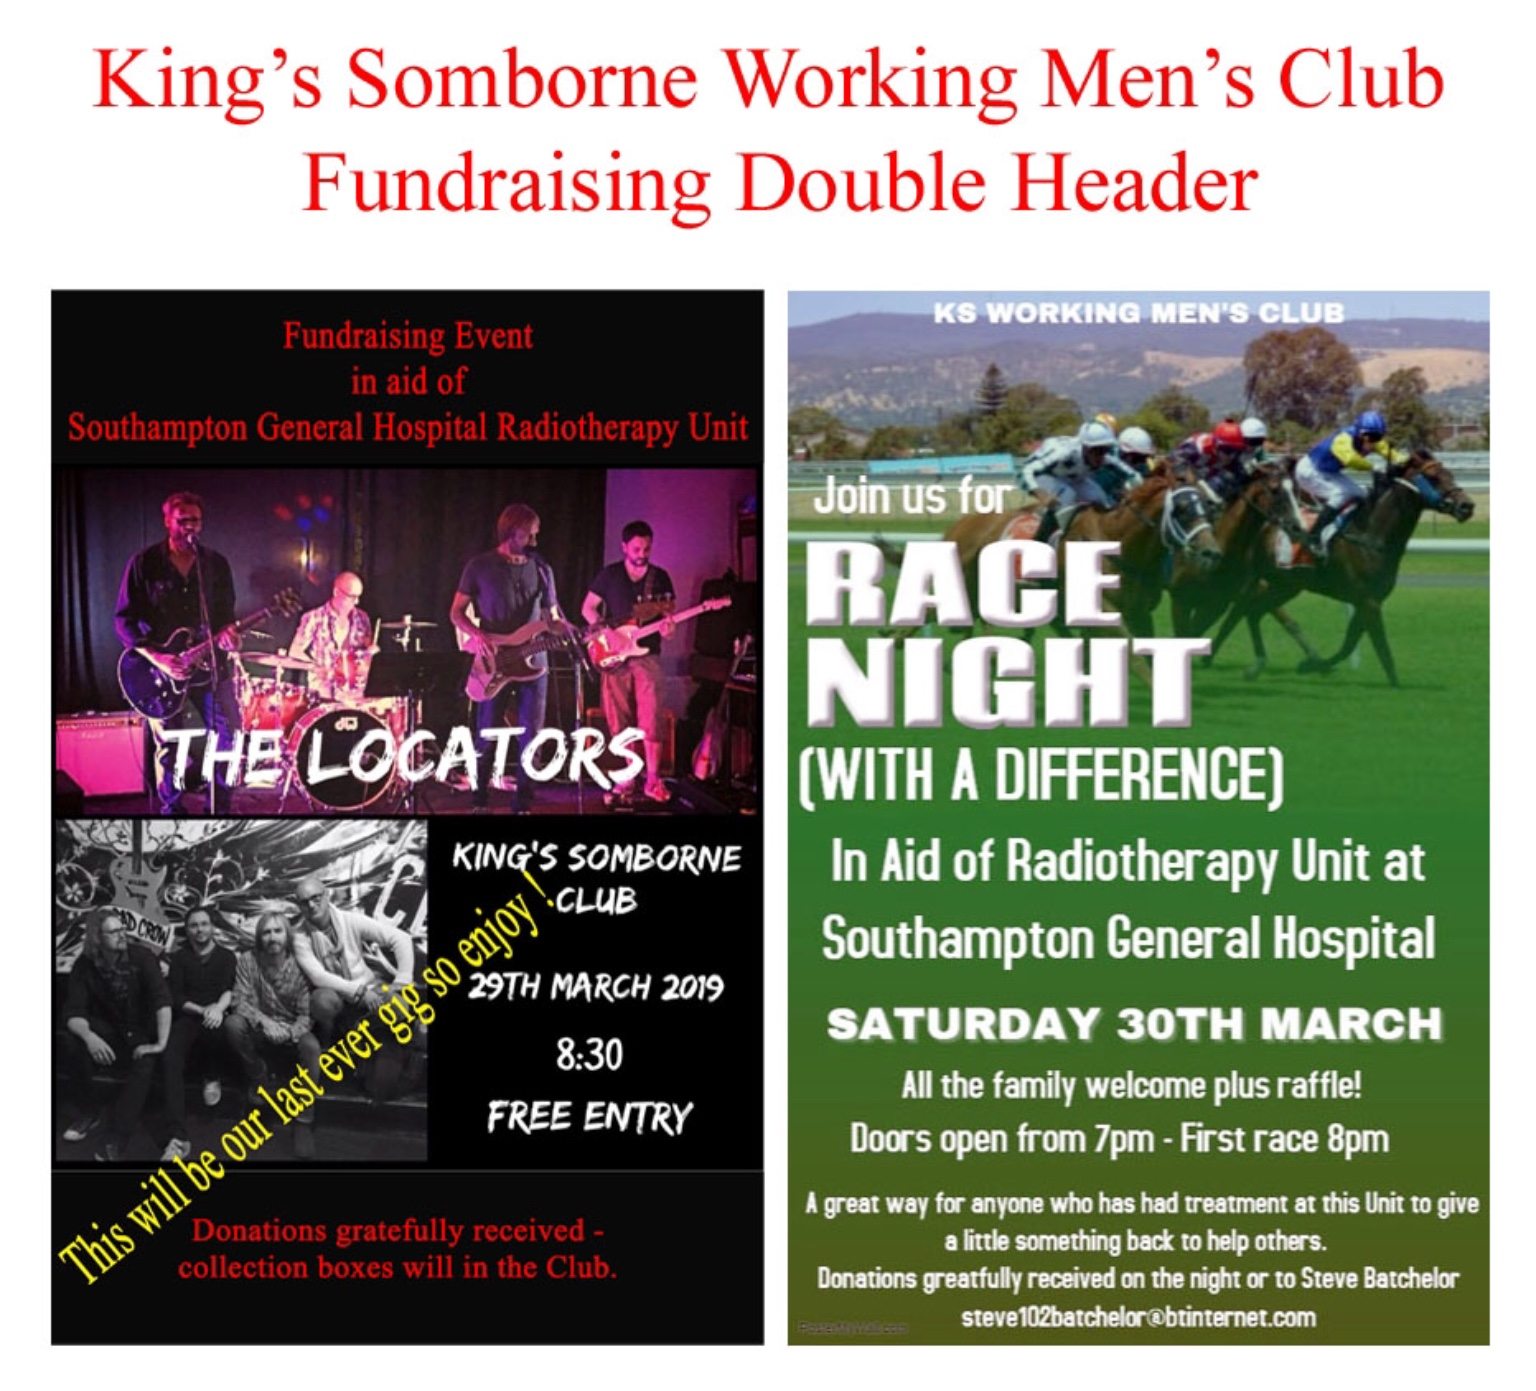 Fundraising Double Header